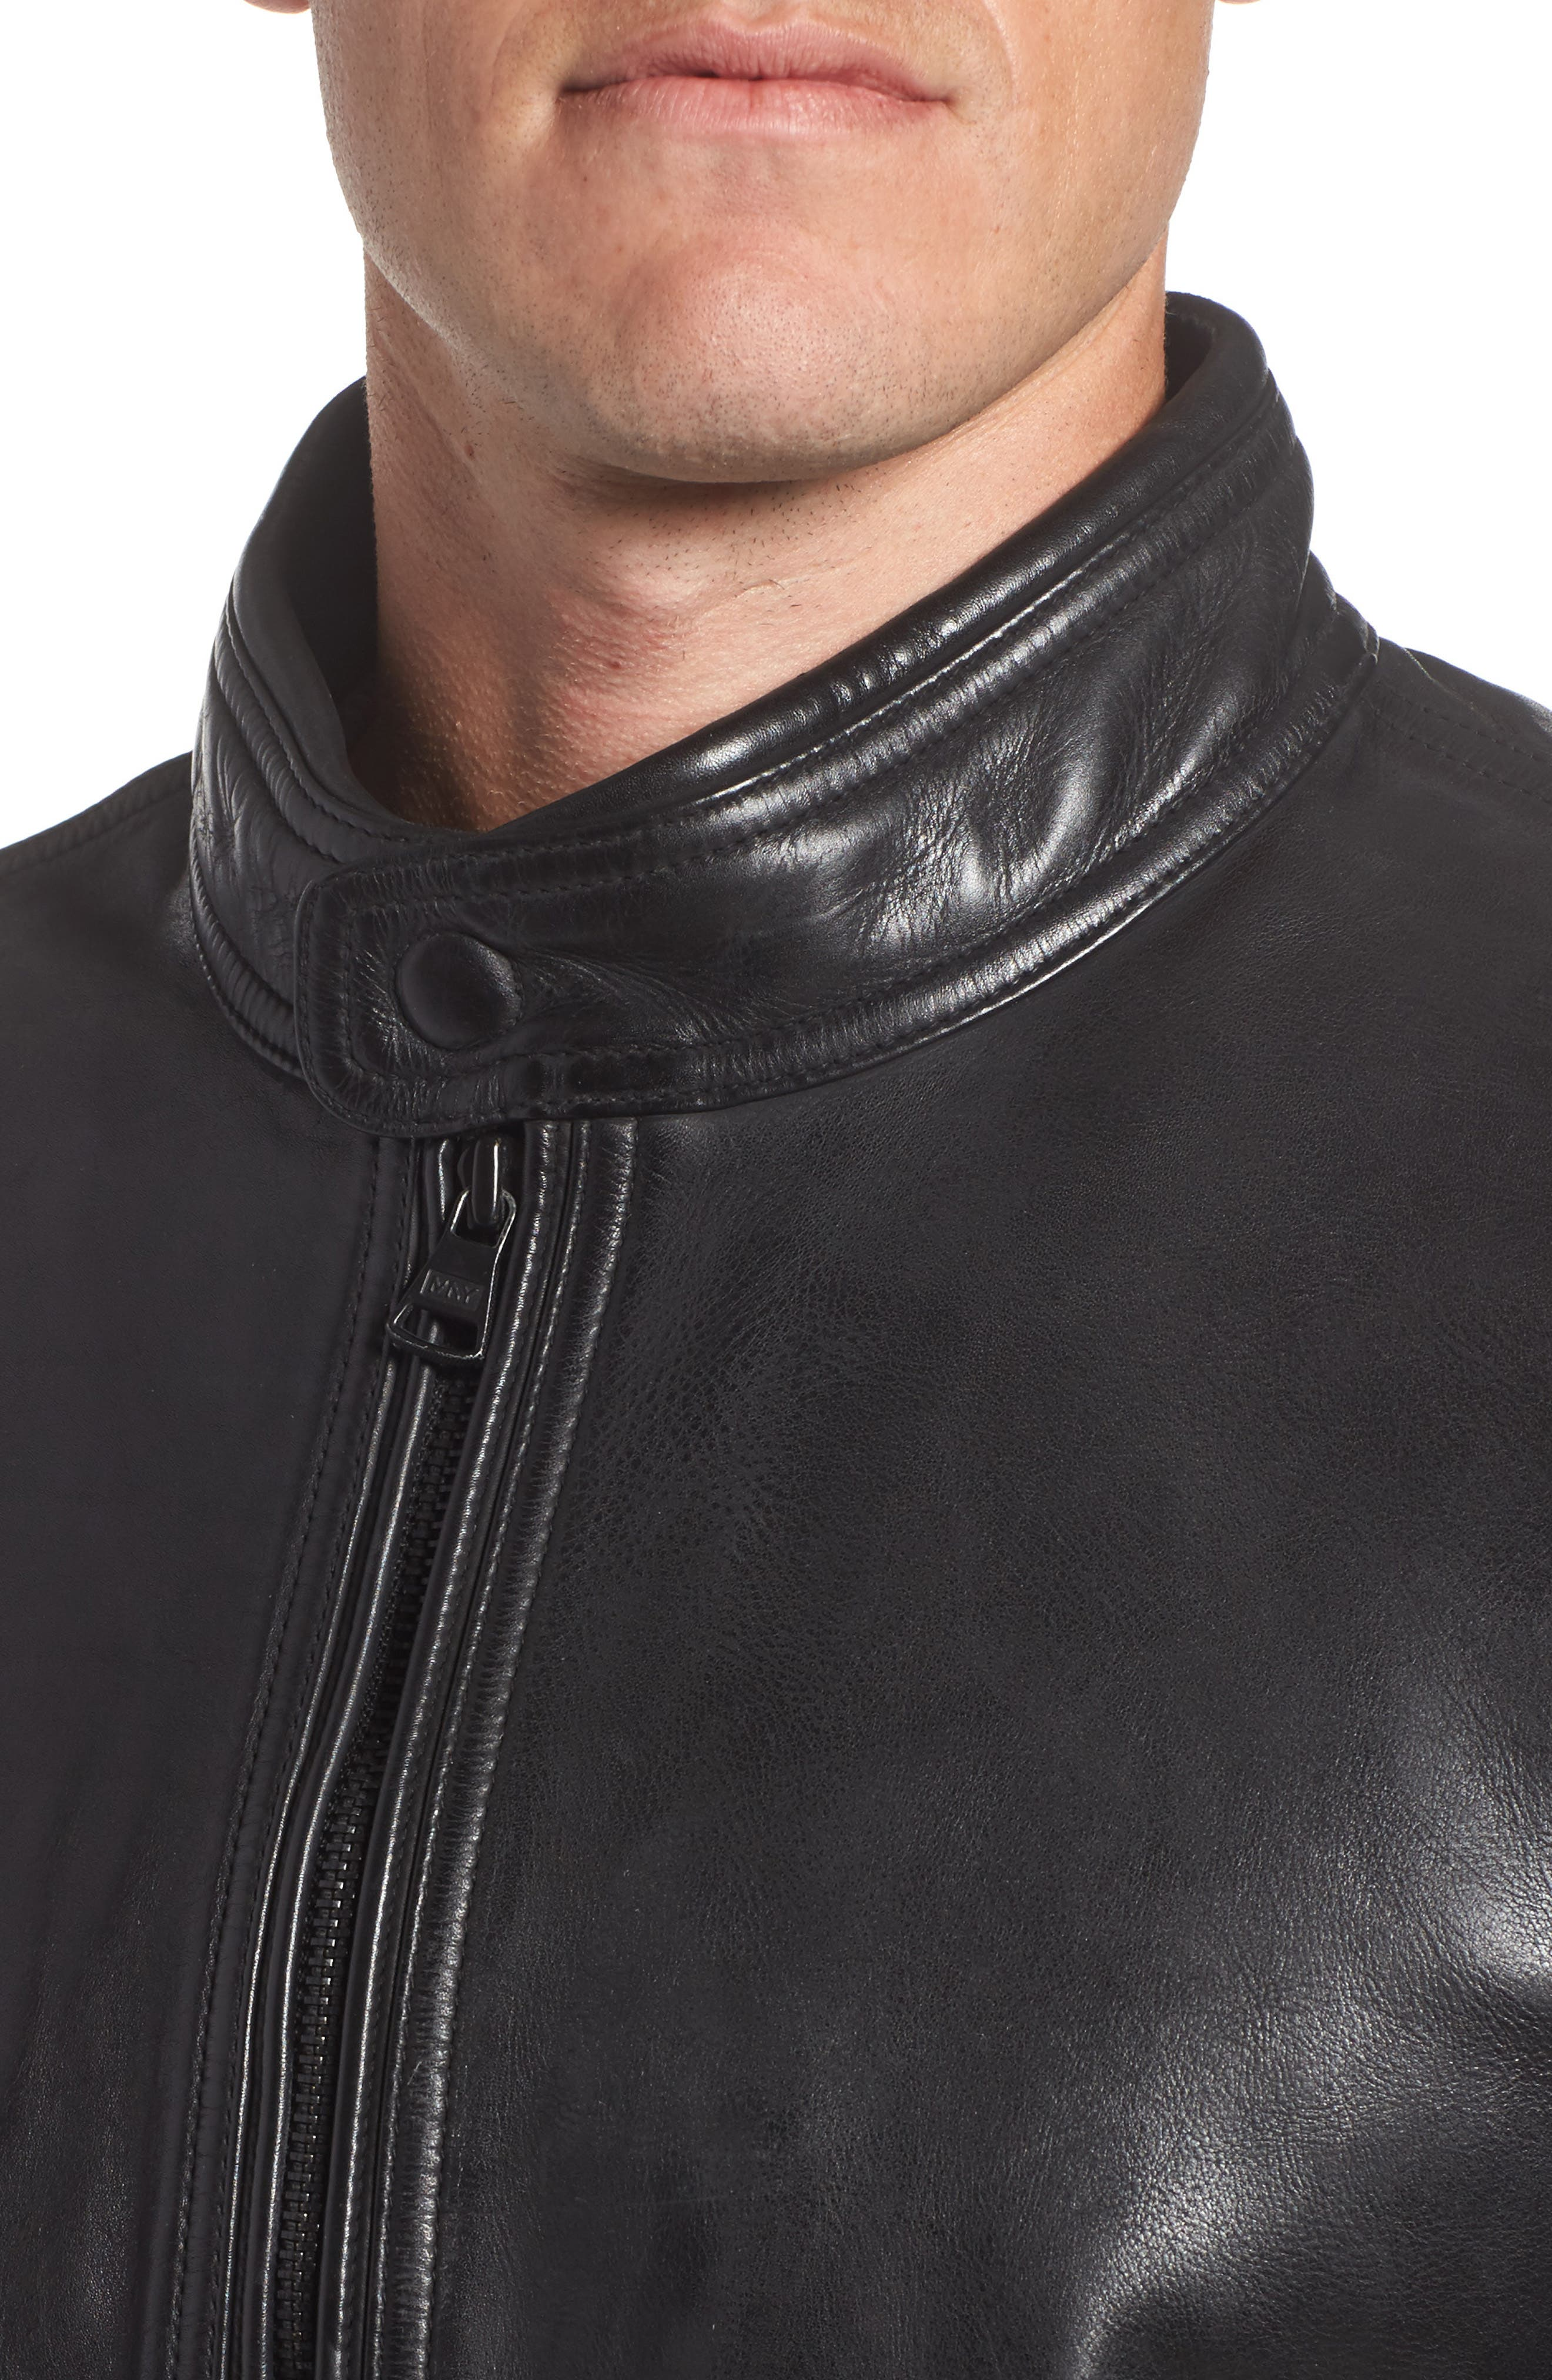 Calfskin Leather Moto Jacket,                             Alternate thumbnail 4, color,                             001